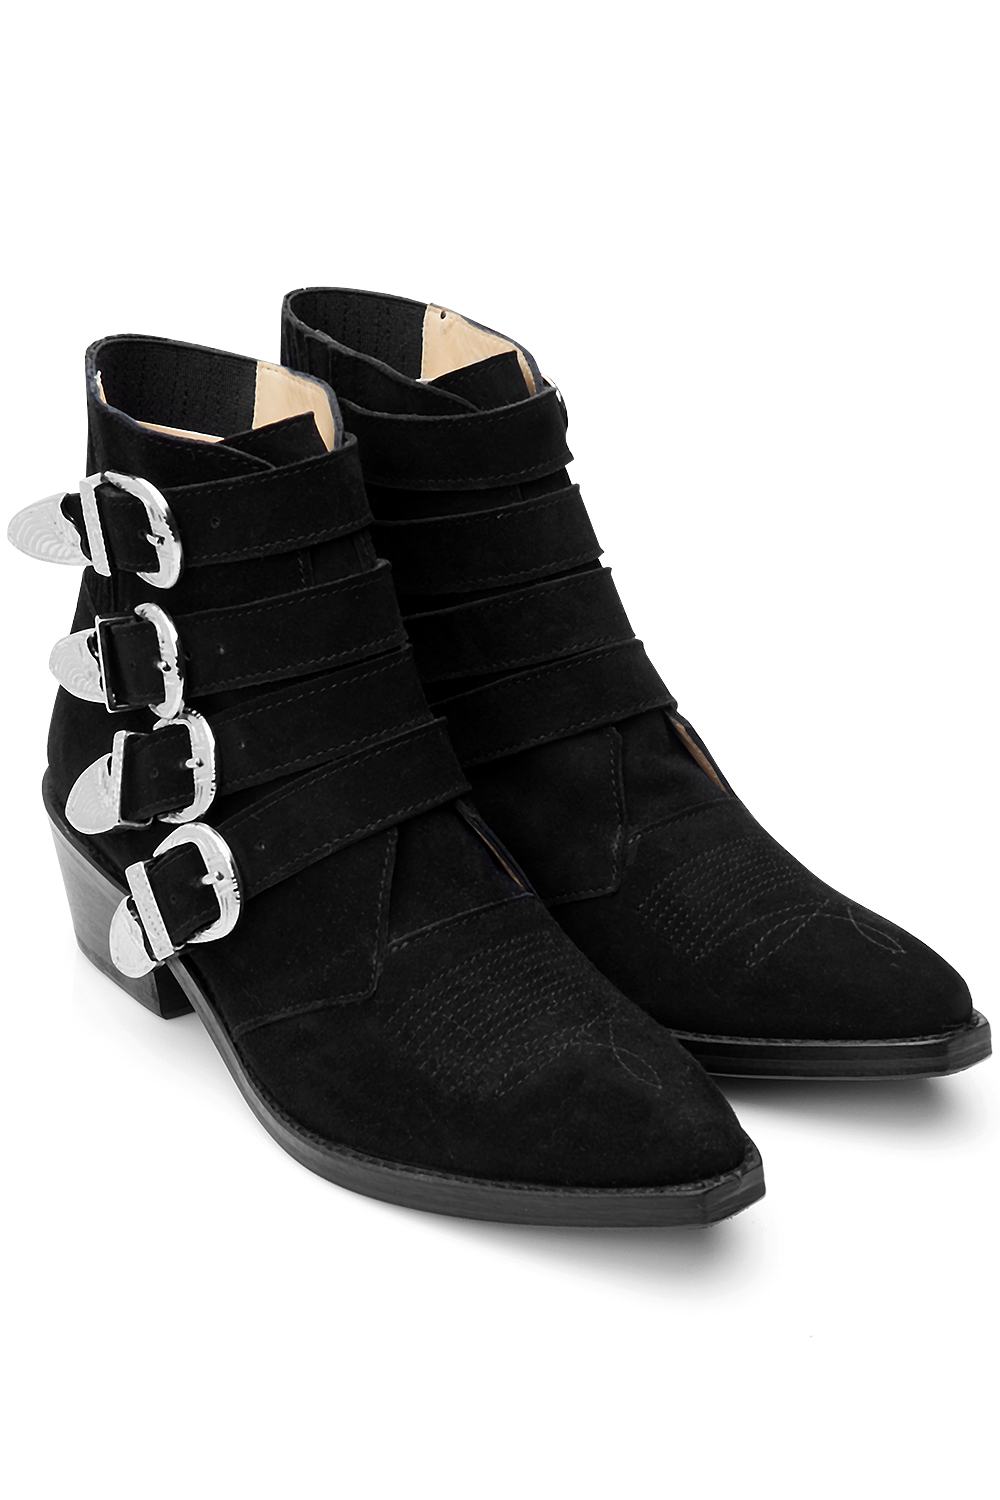 Buckle Ankle Boots 3UHA0oEM